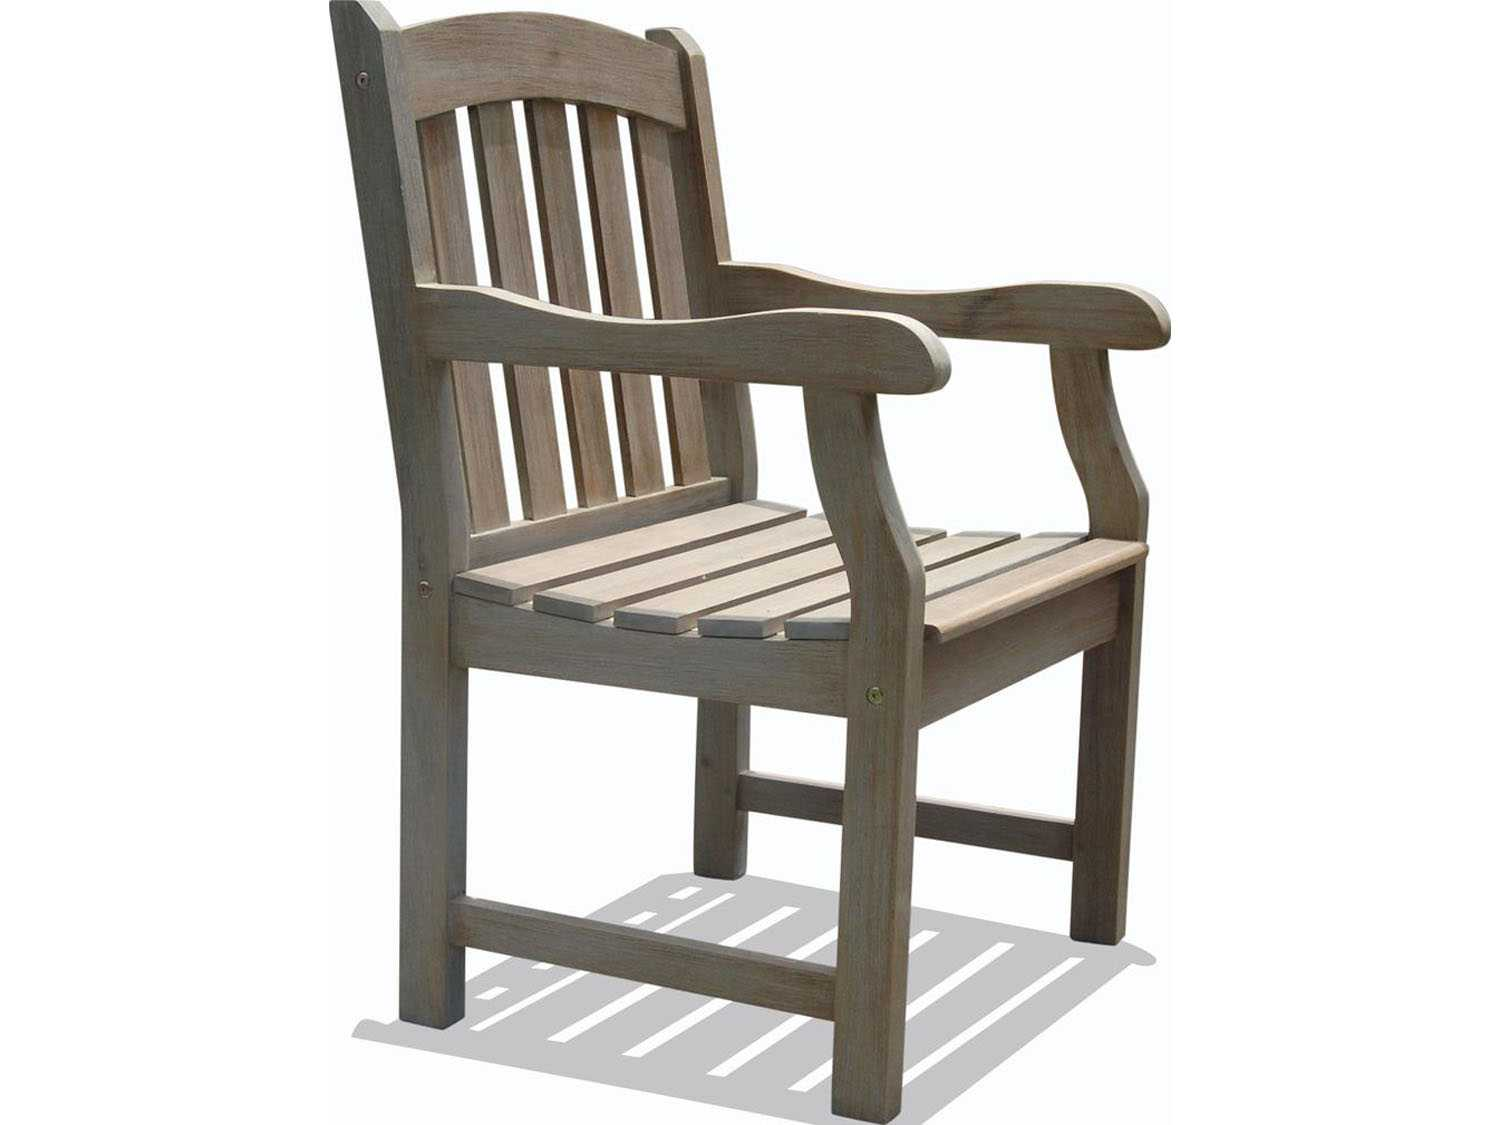 Vifah Wood Lounge Chair